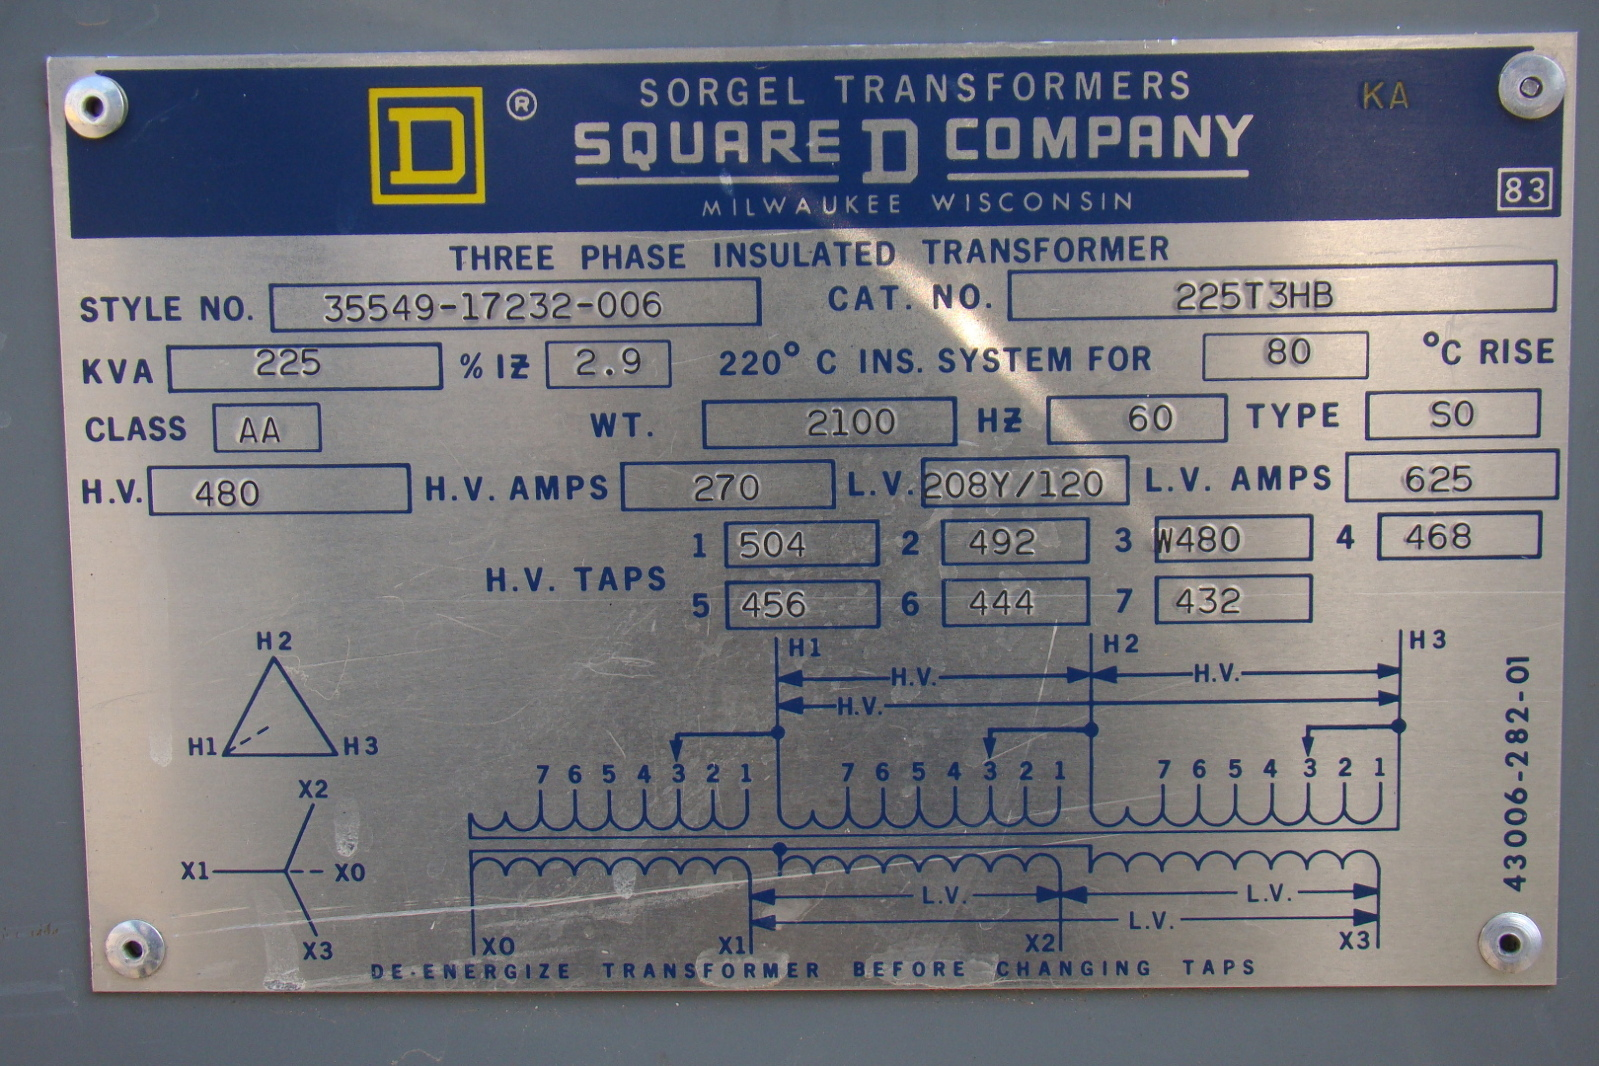 hight resolution of square d sorgel transformers wiring diagram square d control transformer wiring diagram 480 120 control transformer symbol schematic